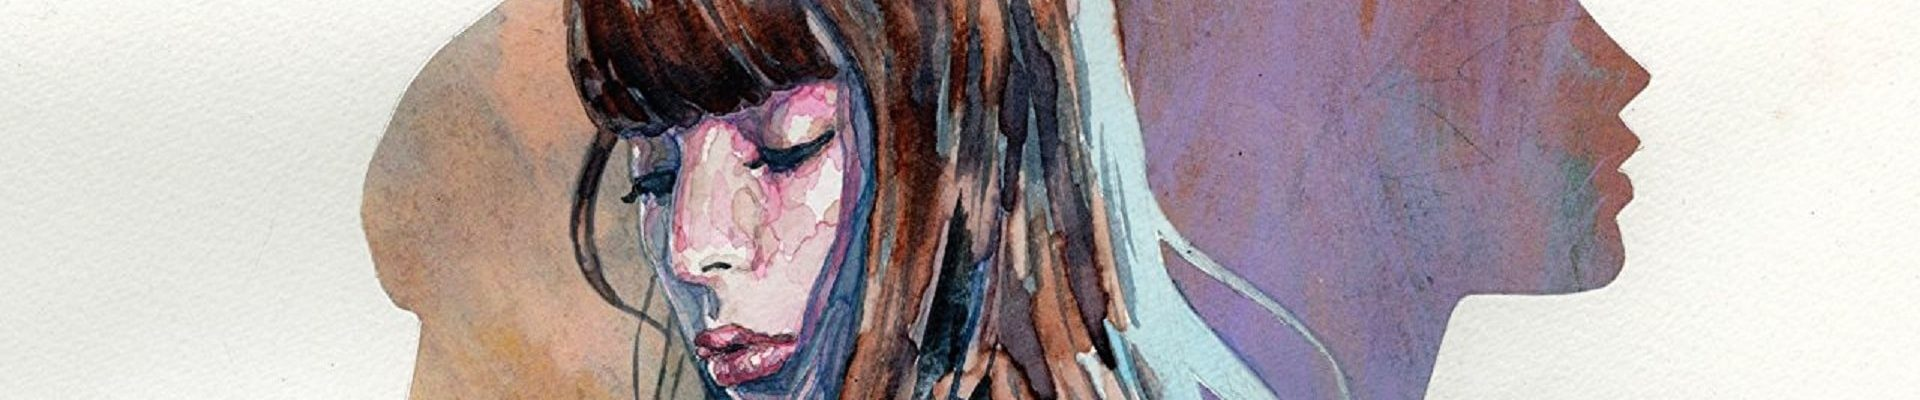 on sale this week: jessica jones